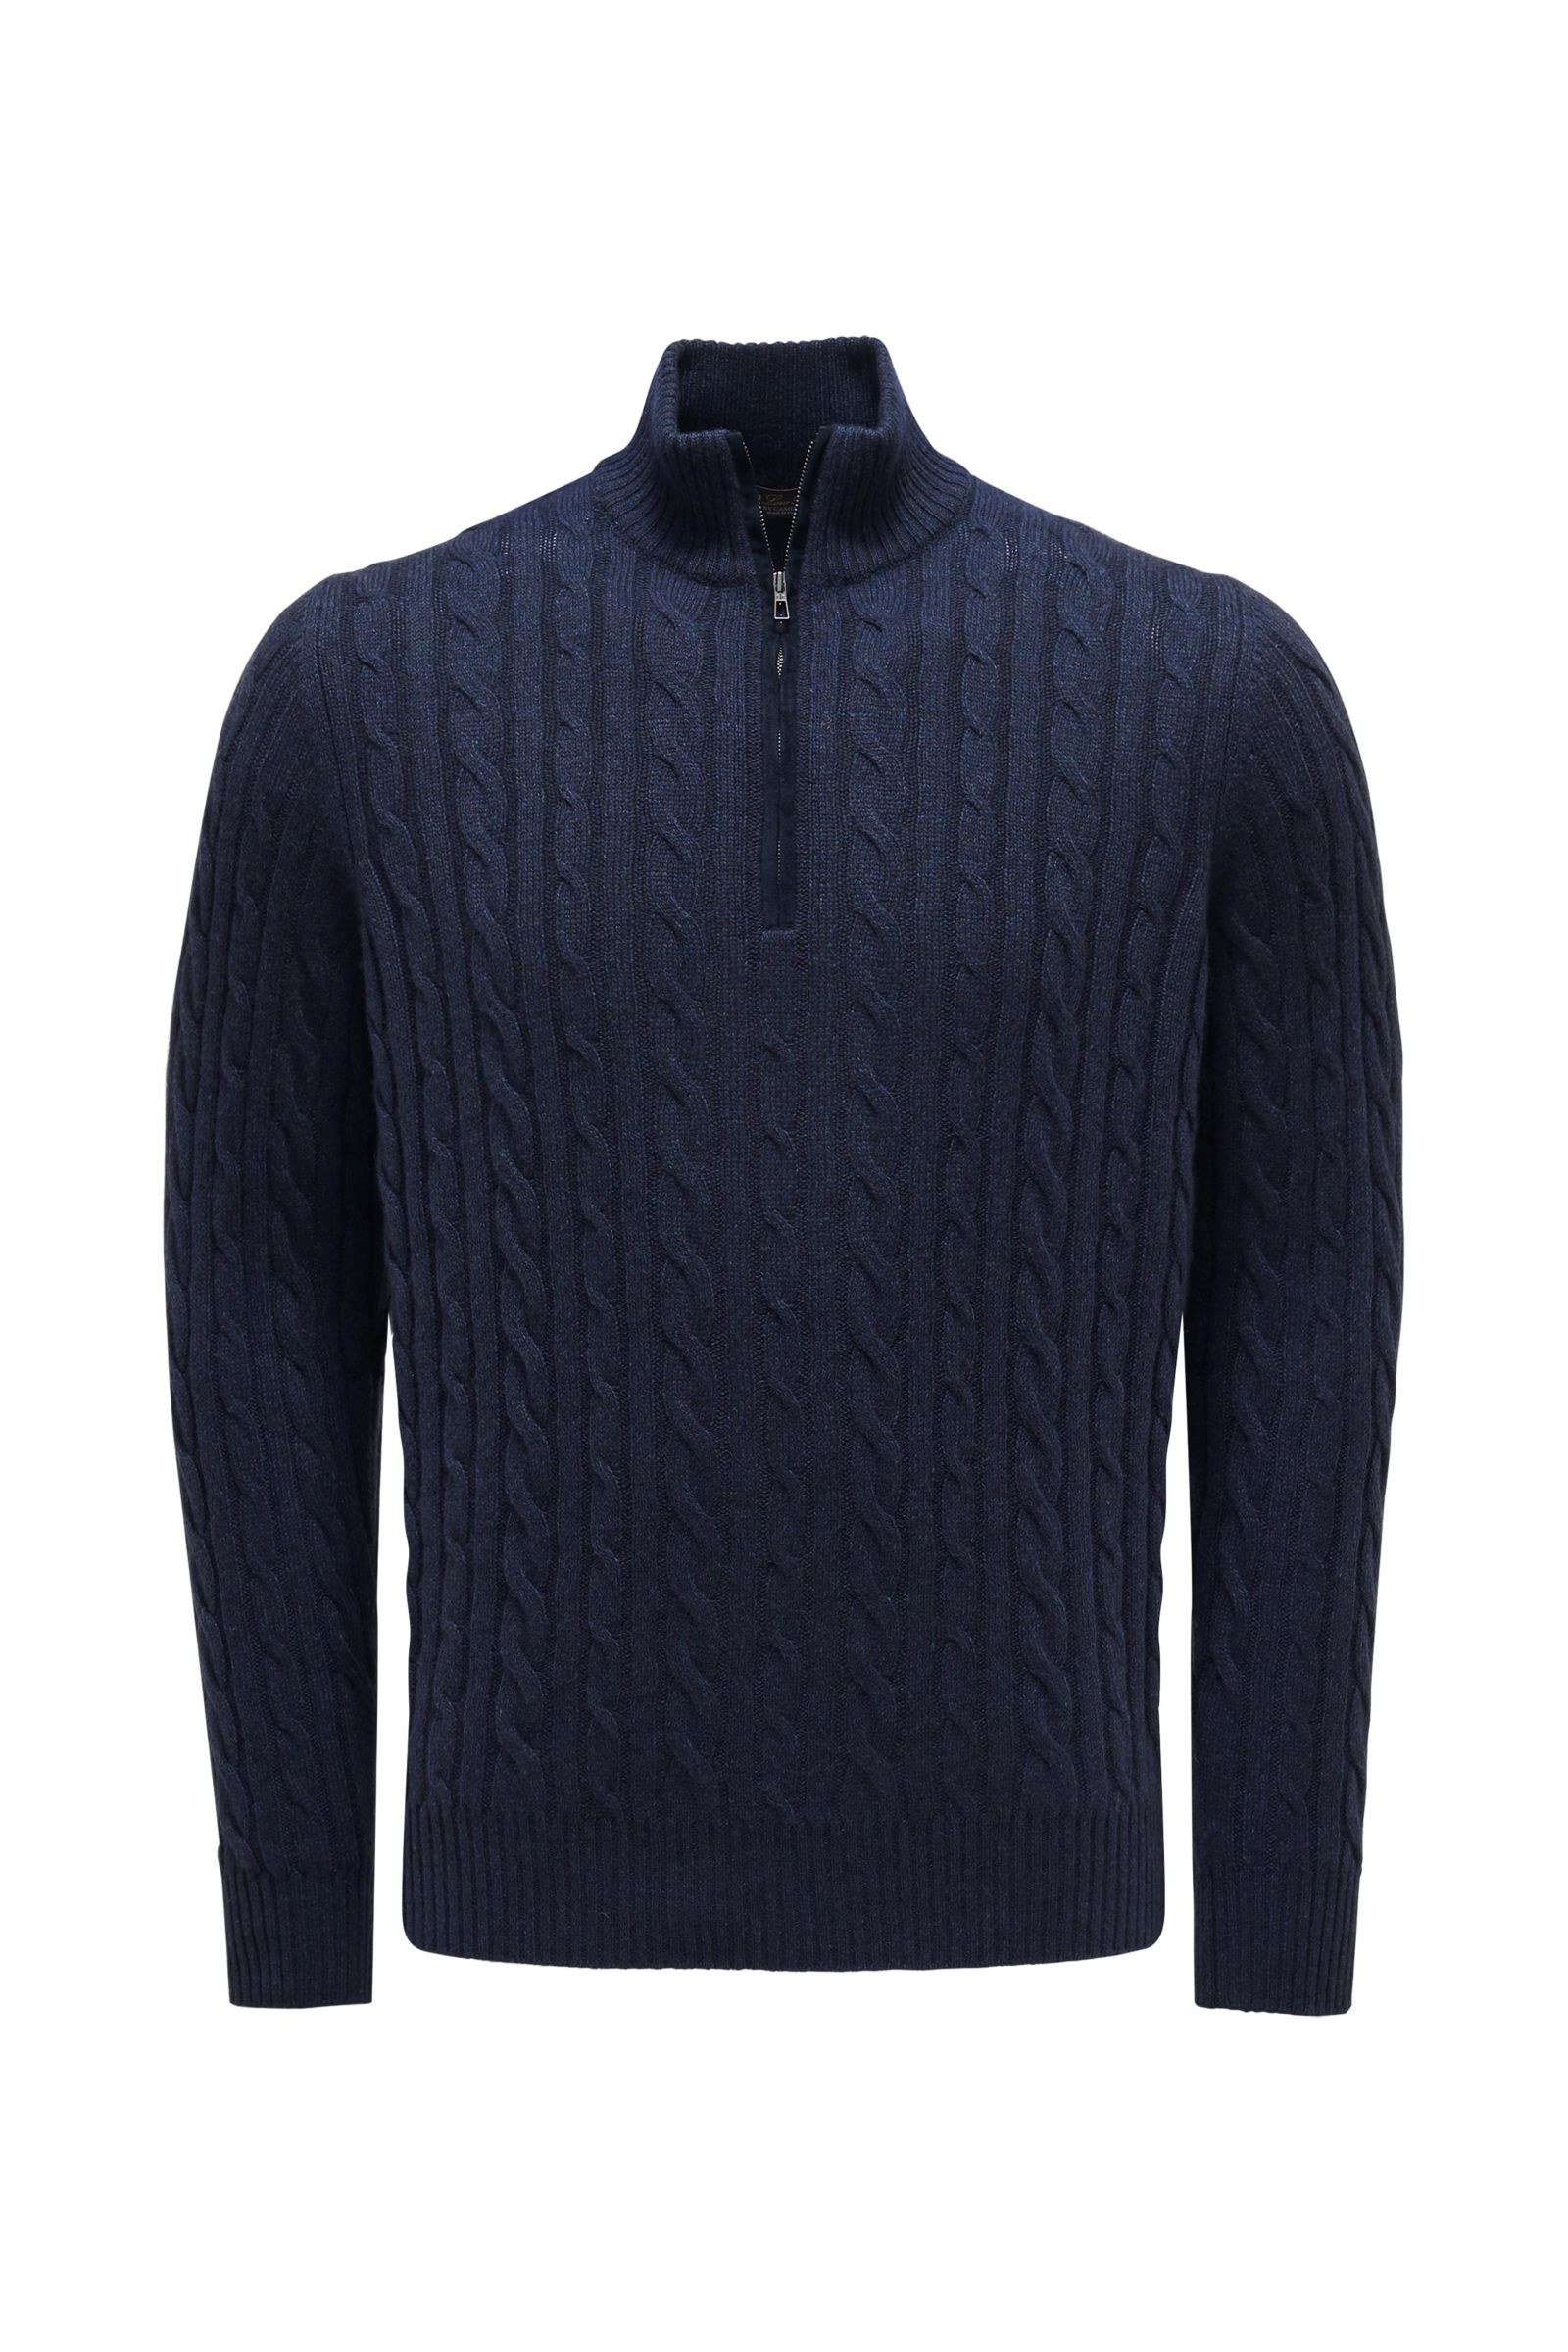 Baby-Cashmere Troyer navy